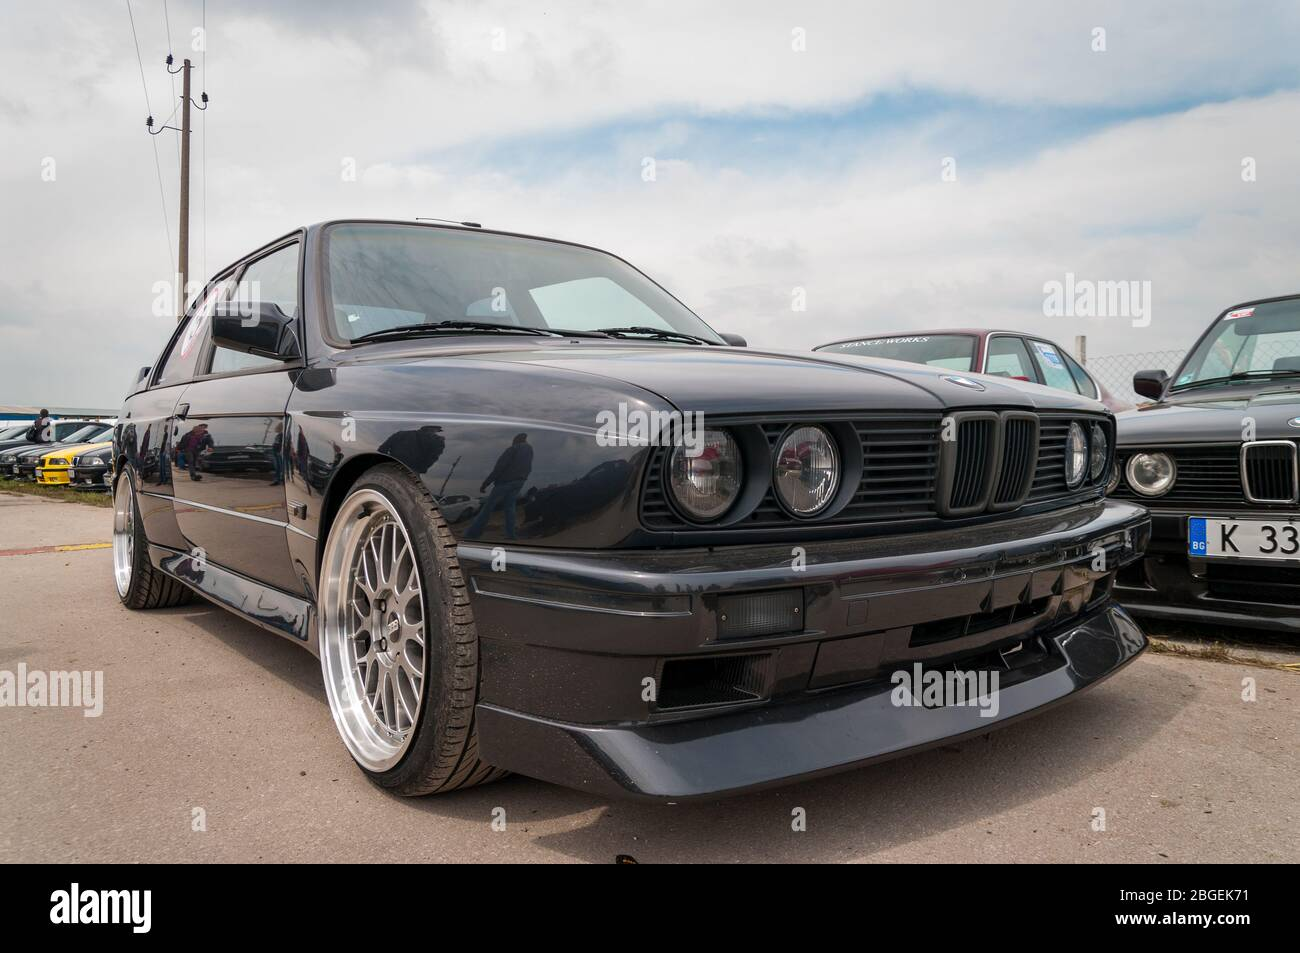 London England June 1st 2014 Retro Bmw M3 E30 Sports Car Tribute To Bmw Cars There Are Many Bmw From Old Cars To New Sports Cars Collect Stock Photo Alamy